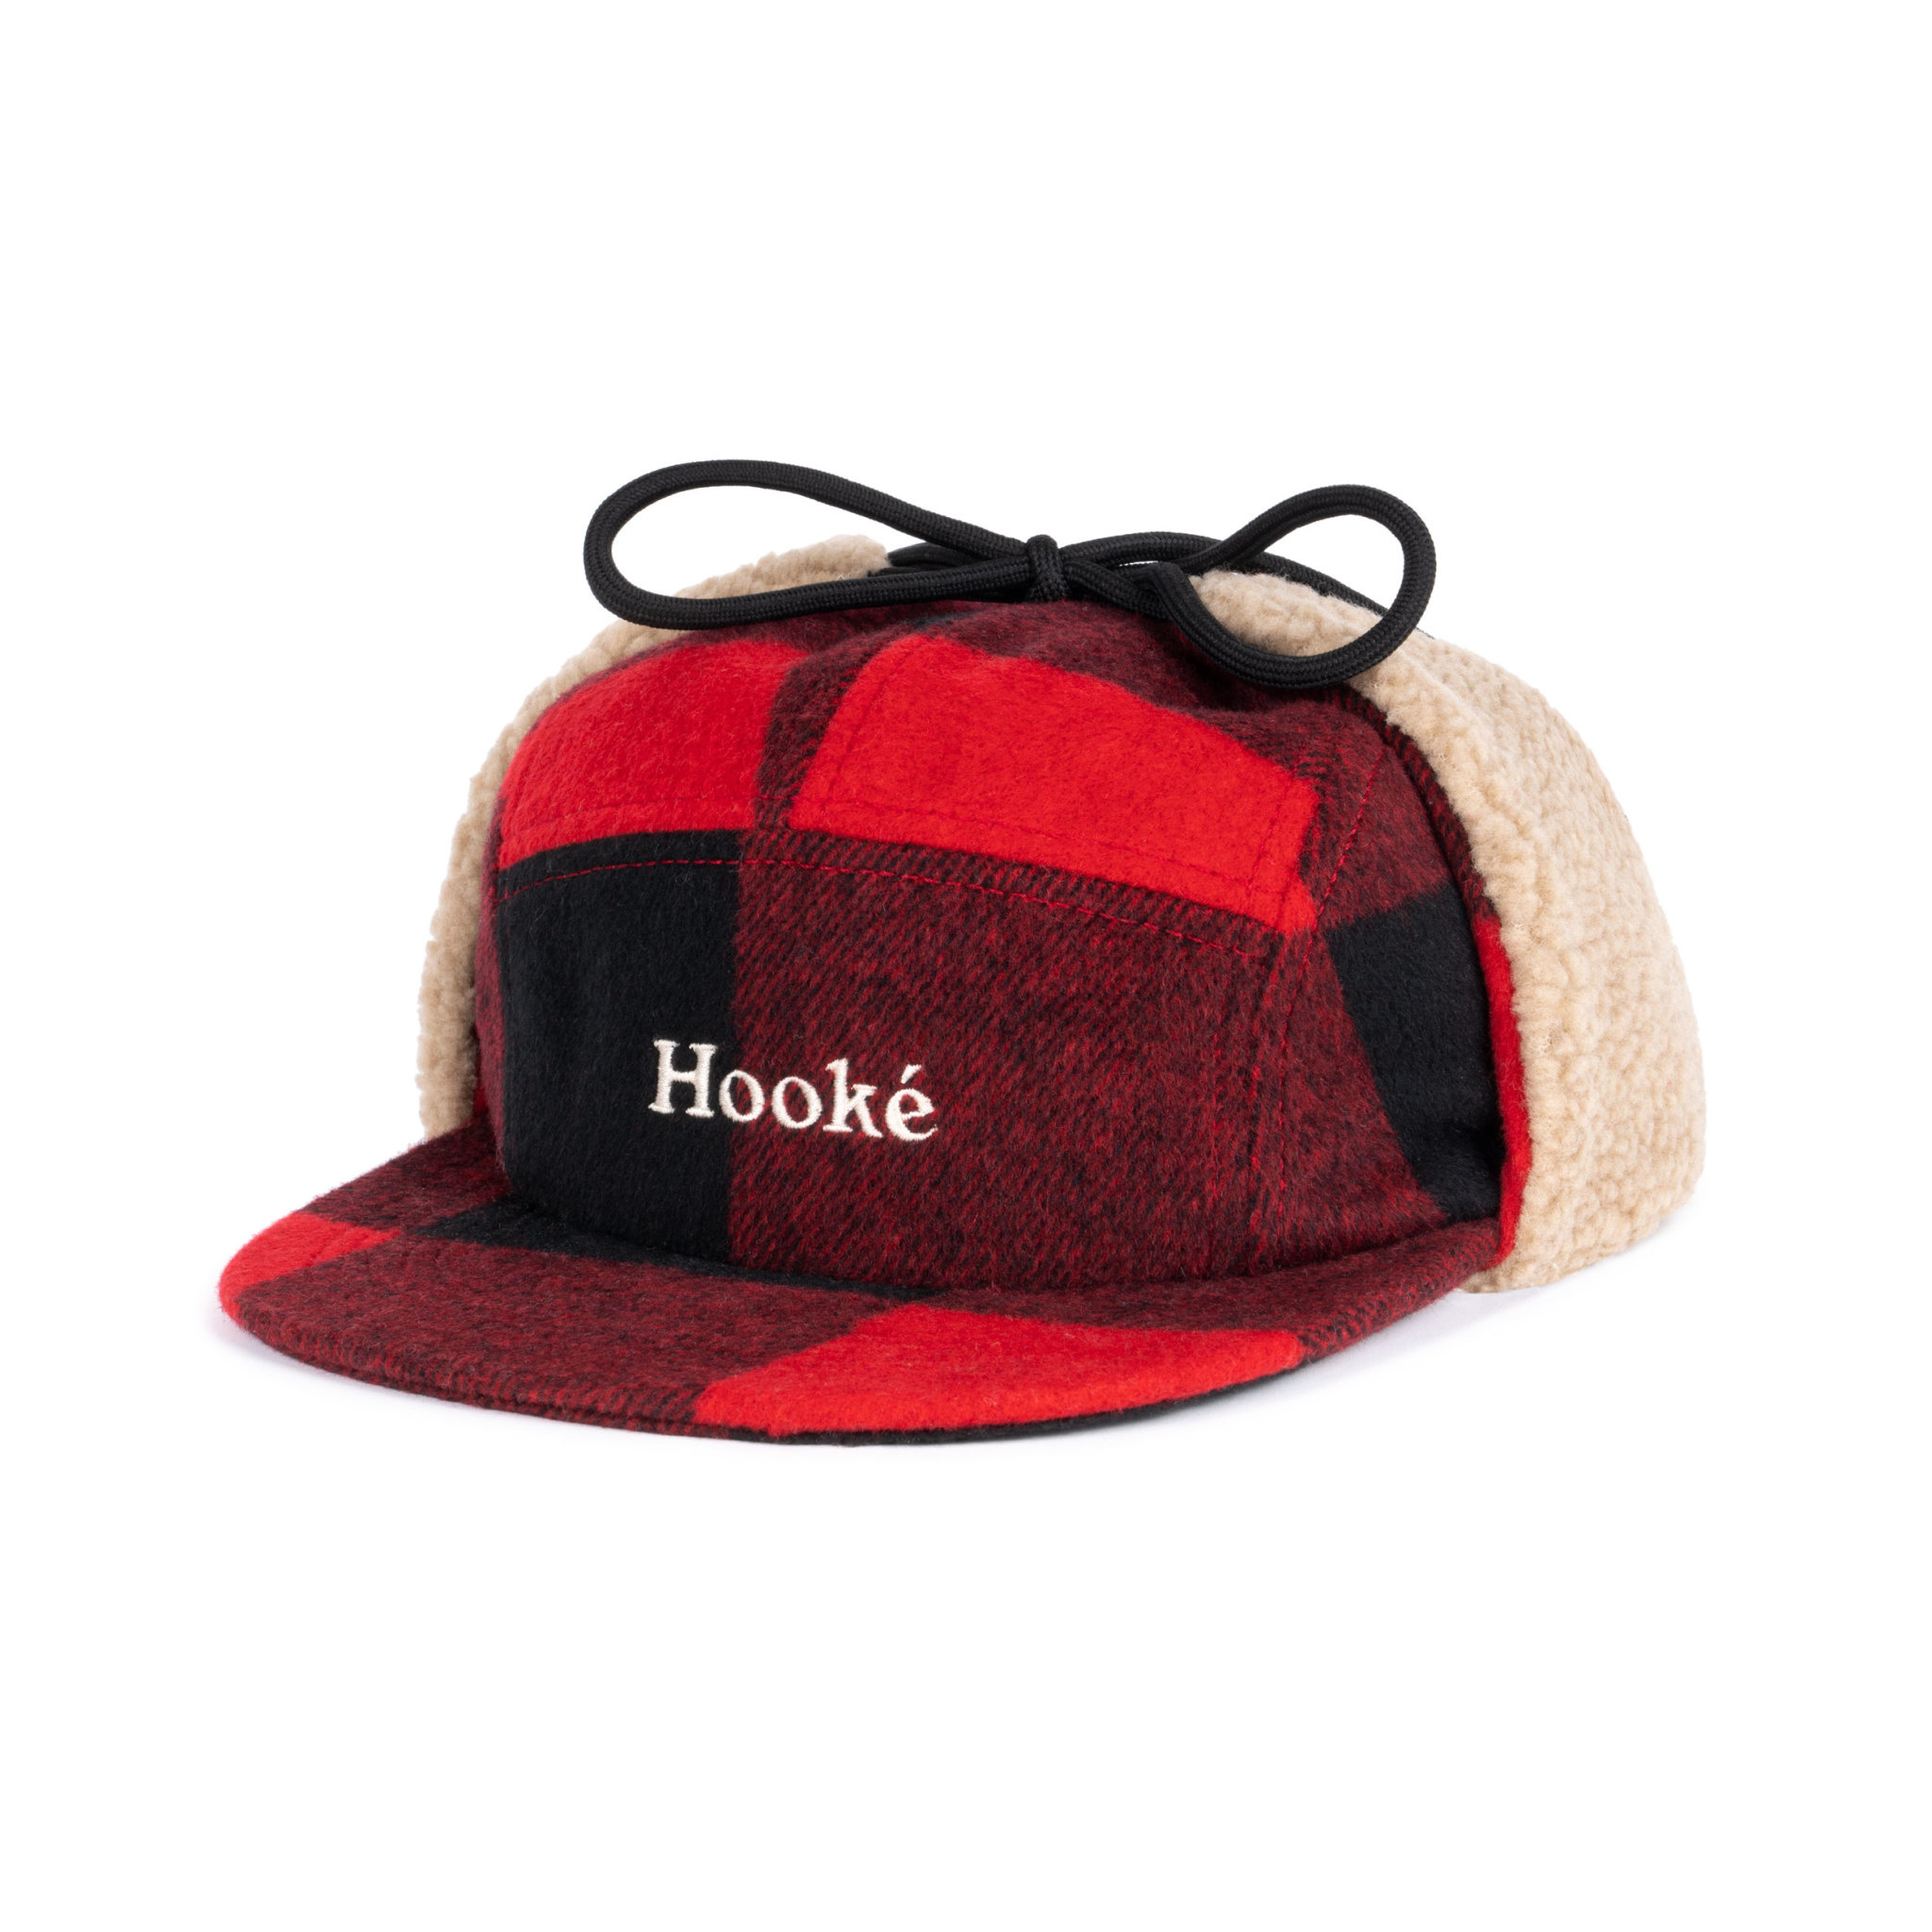 Hooké Ear Flap Camper Hat Red & Black